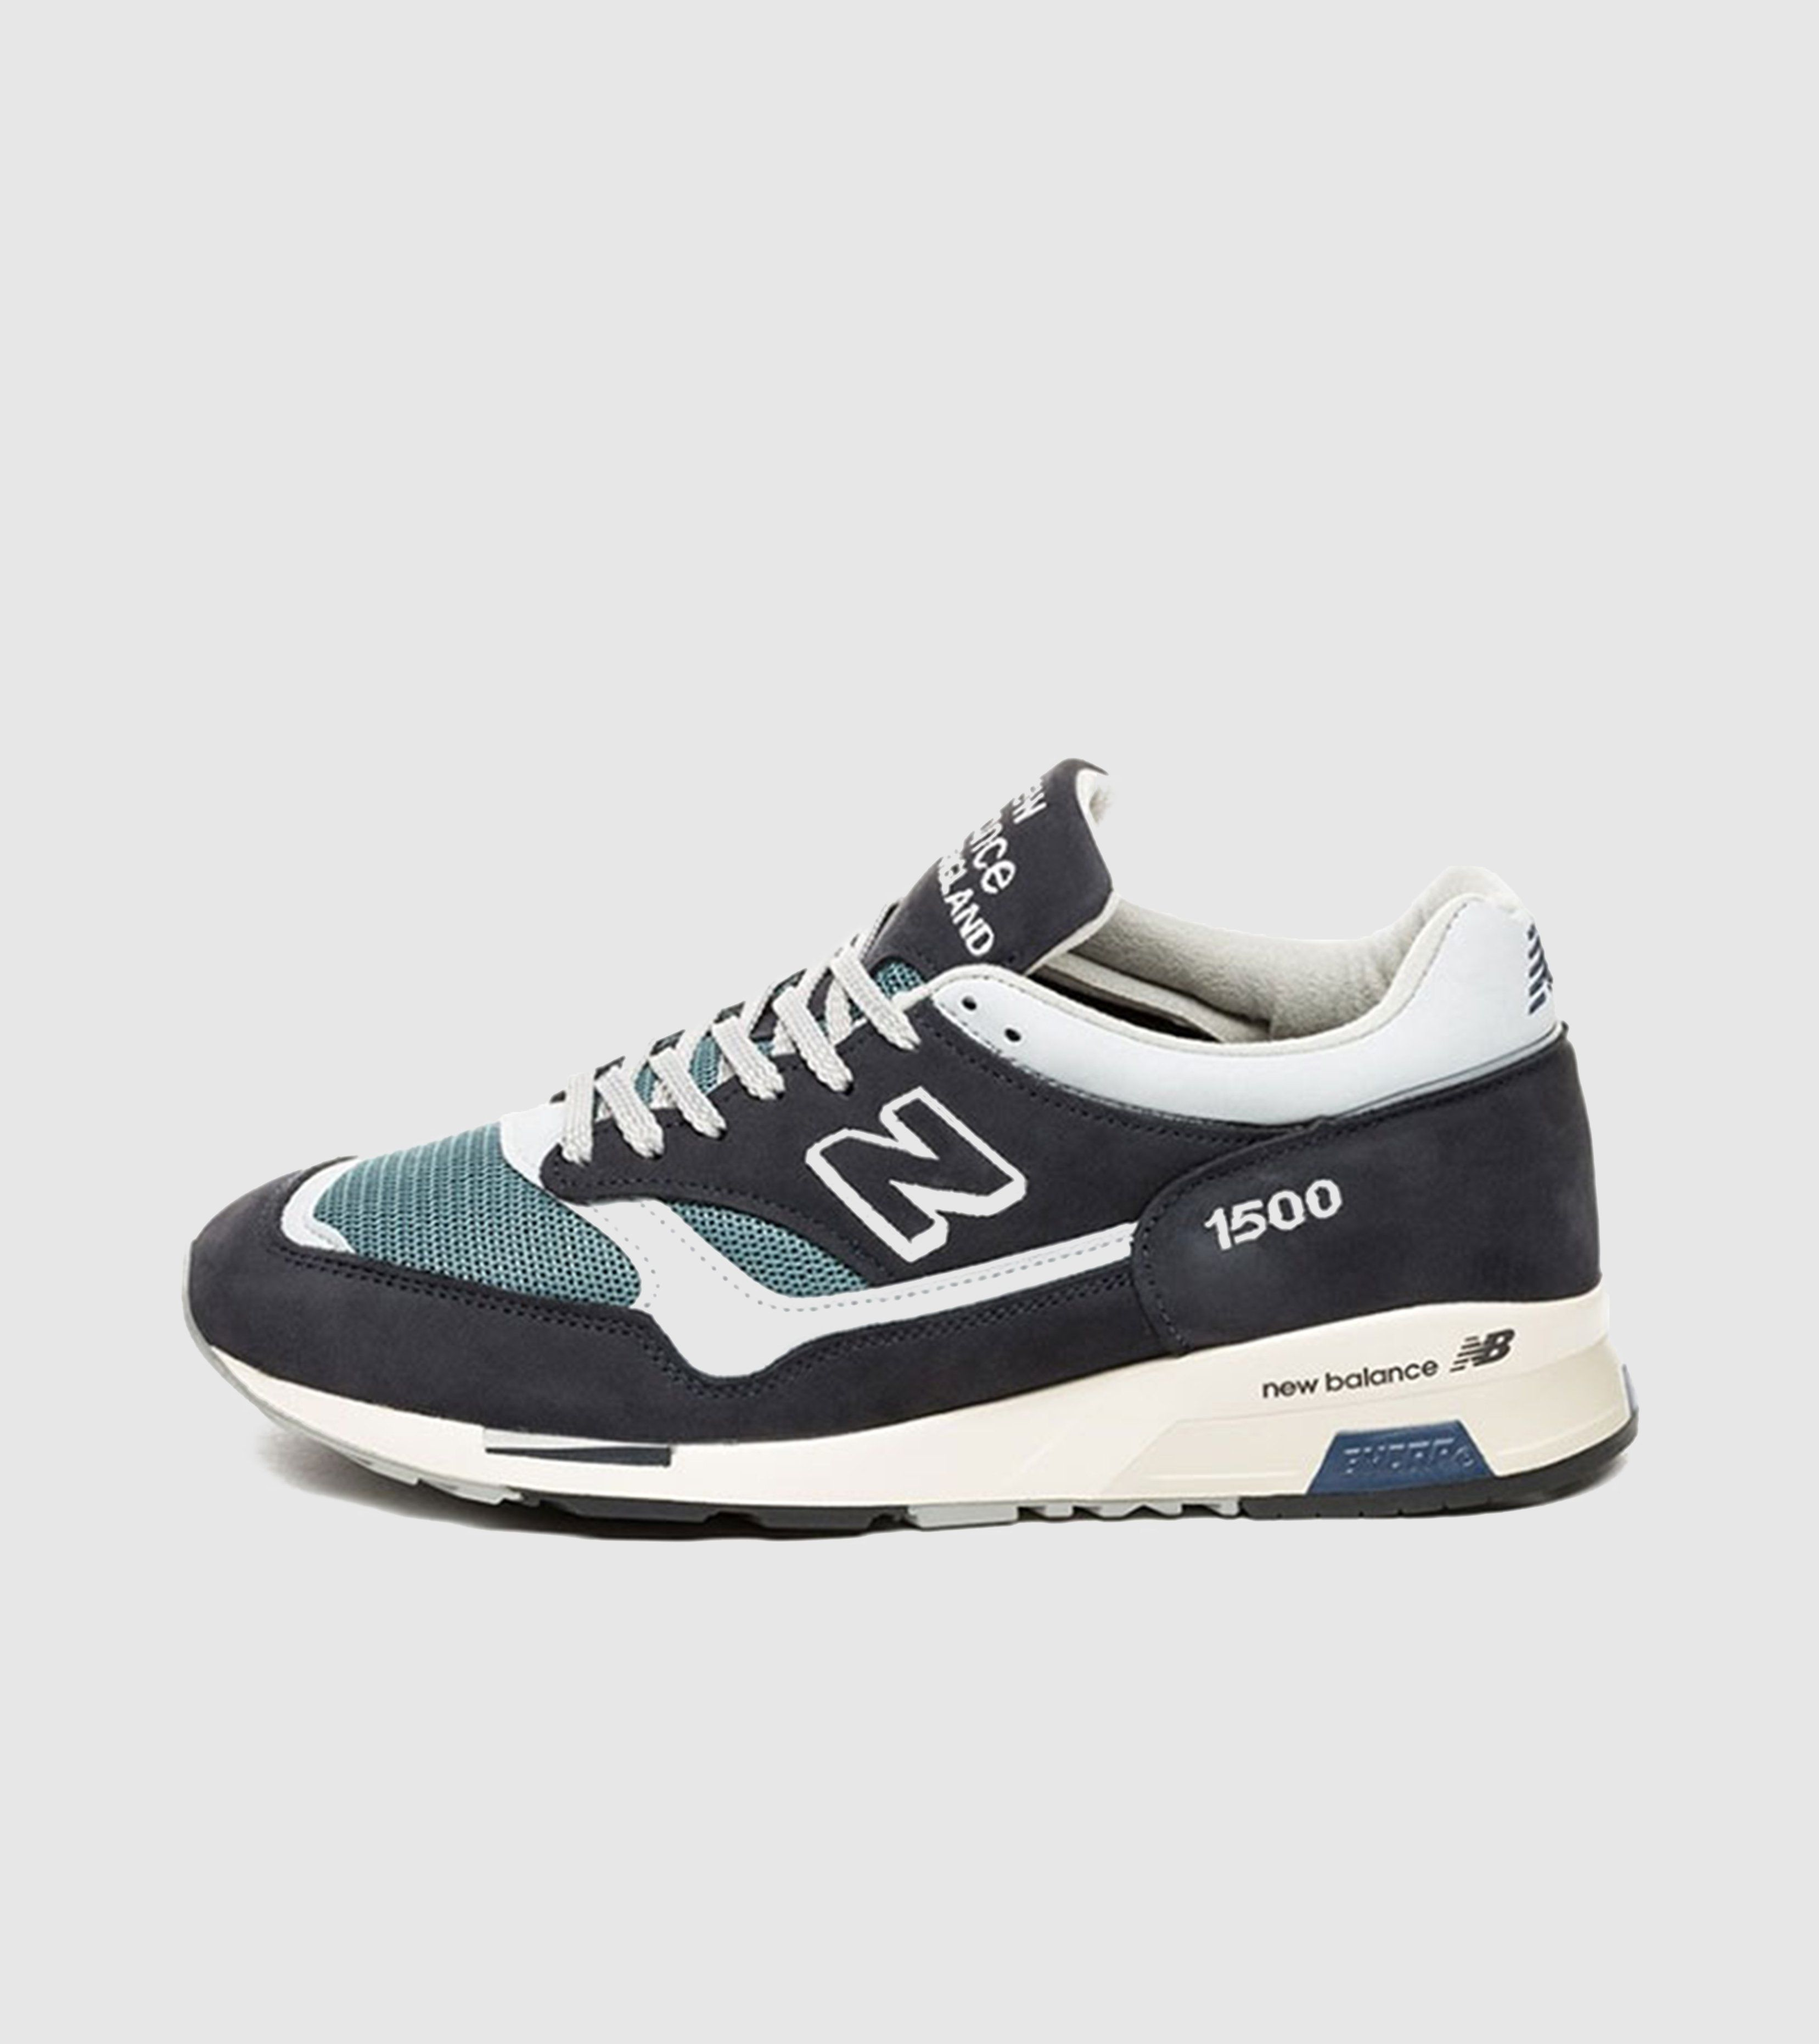 timeless design 2ecd4 b9573 New Balance 1500 OG  Made In England  30th Anniversary   Size